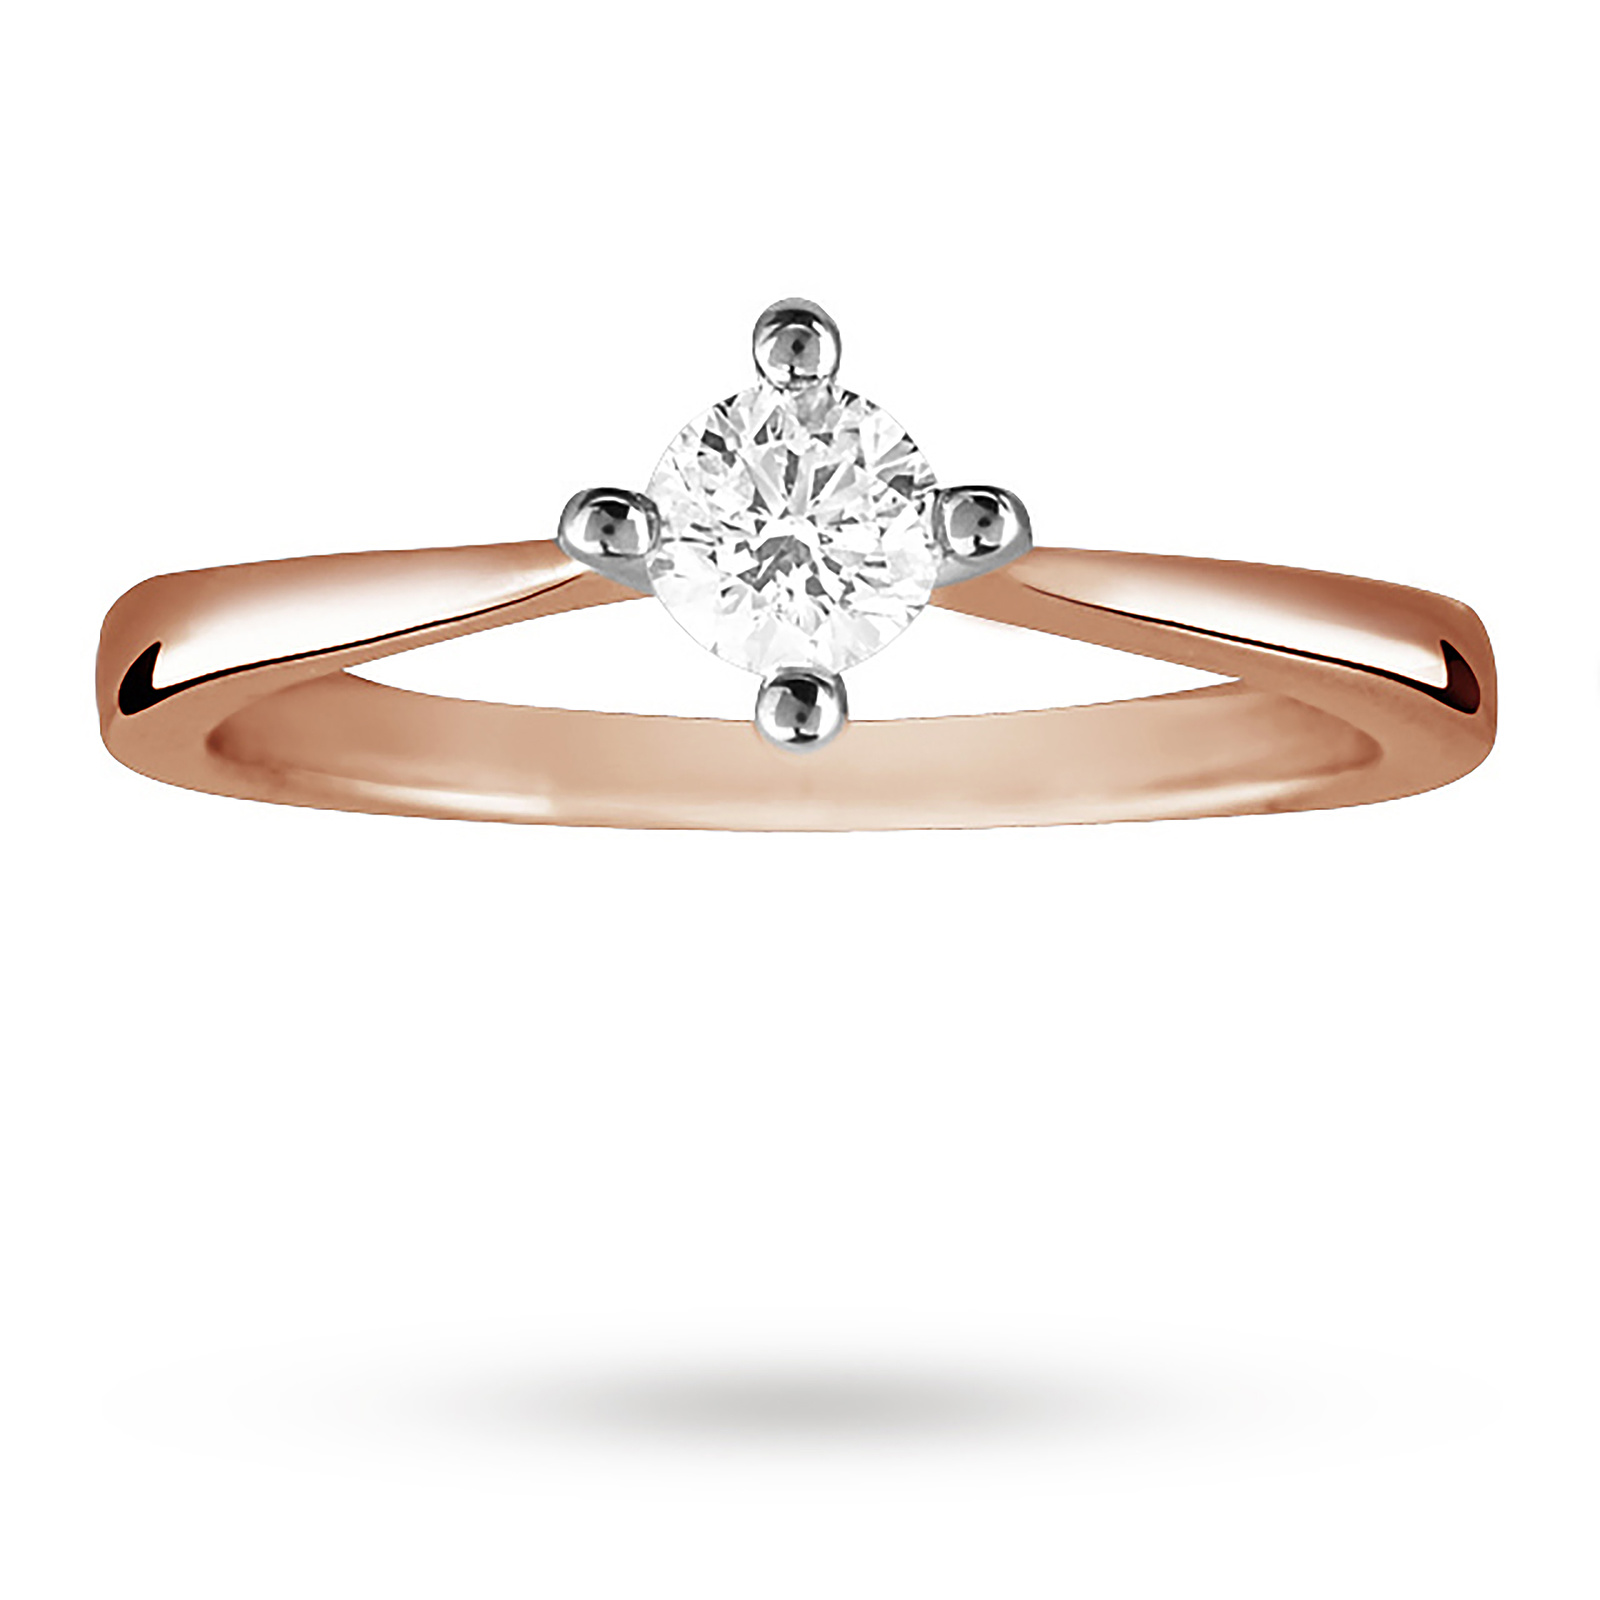 Brilliant Cut 0.25 Carat Solitaire Diamond Ring In 9 Carat Rose Gold